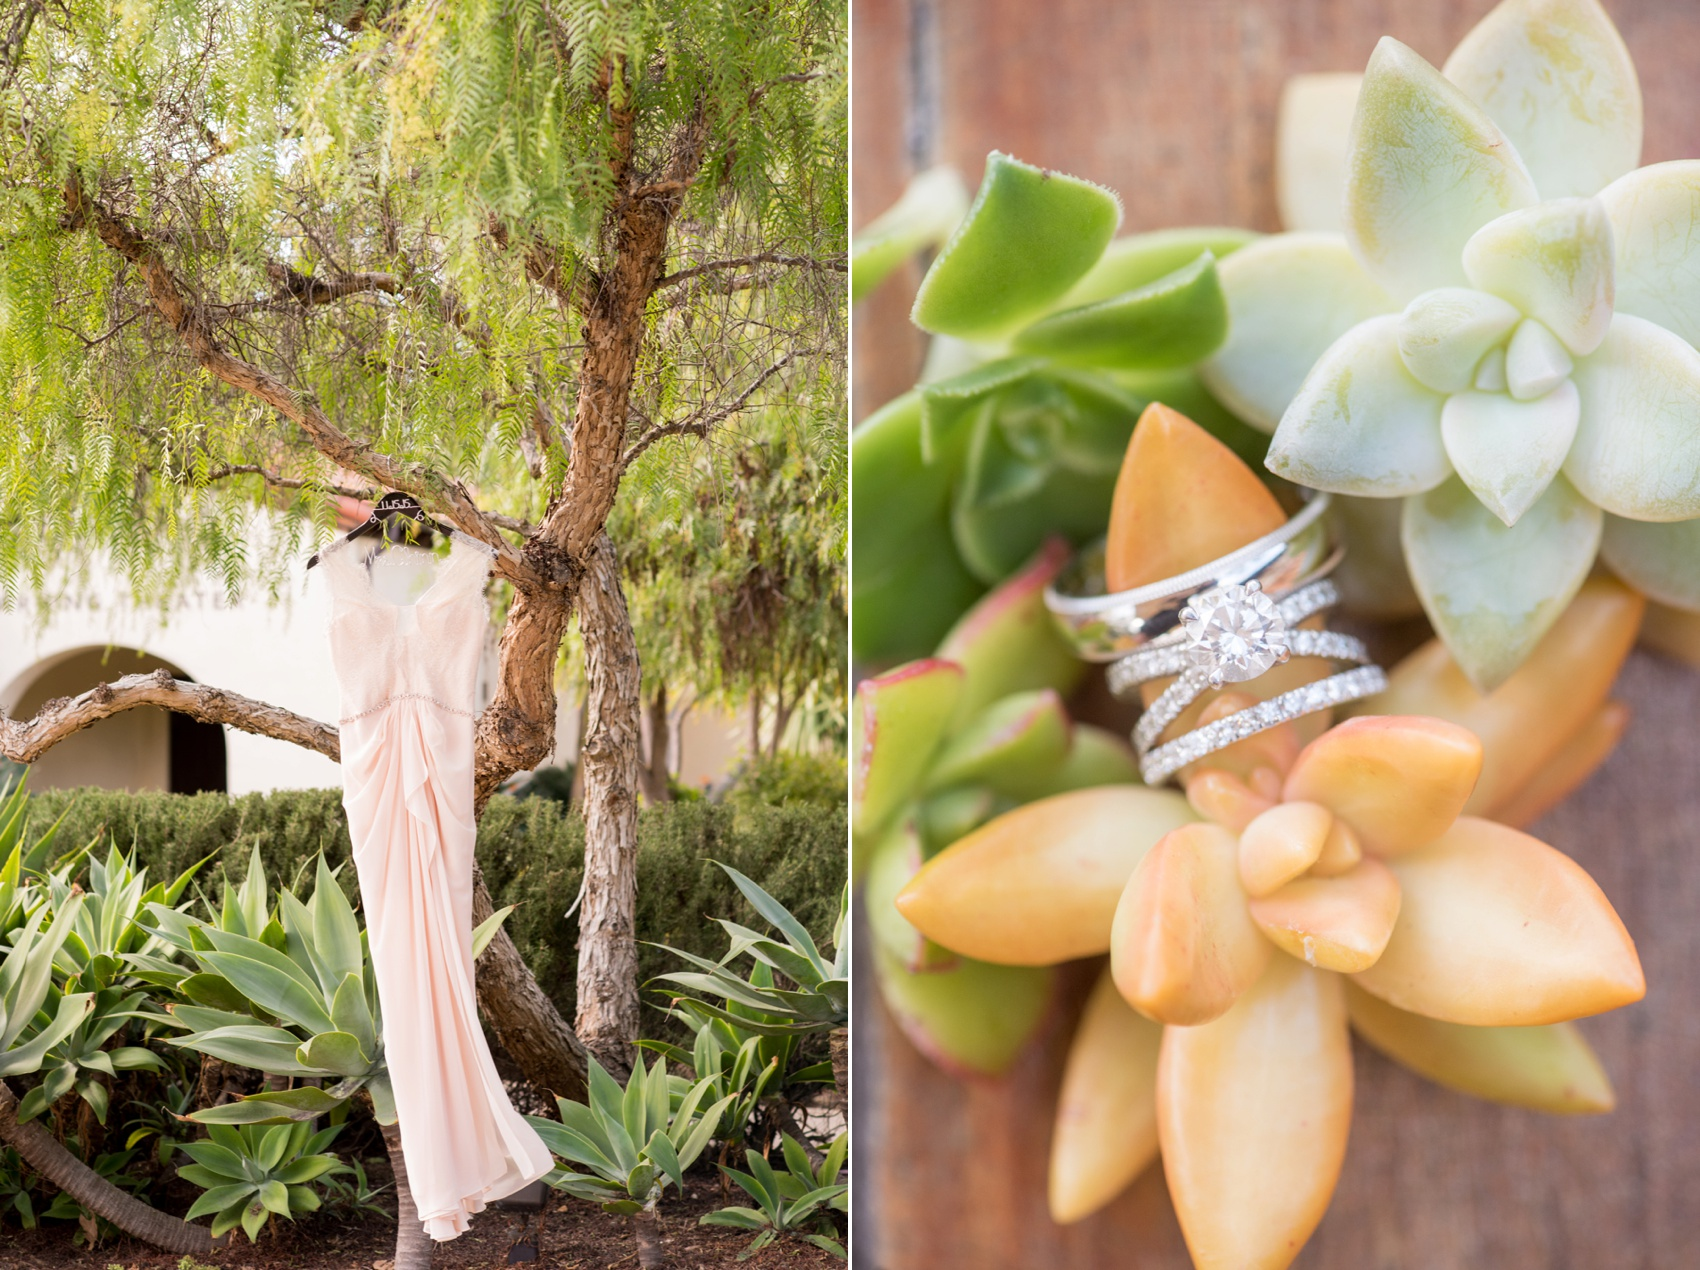 Estancia La Jolla wedding photography by Mikkel Paige Photography. Tropical wedding, California coast. Wedding ring photos on succulent plants and pink lace and chiffon bridal gown.